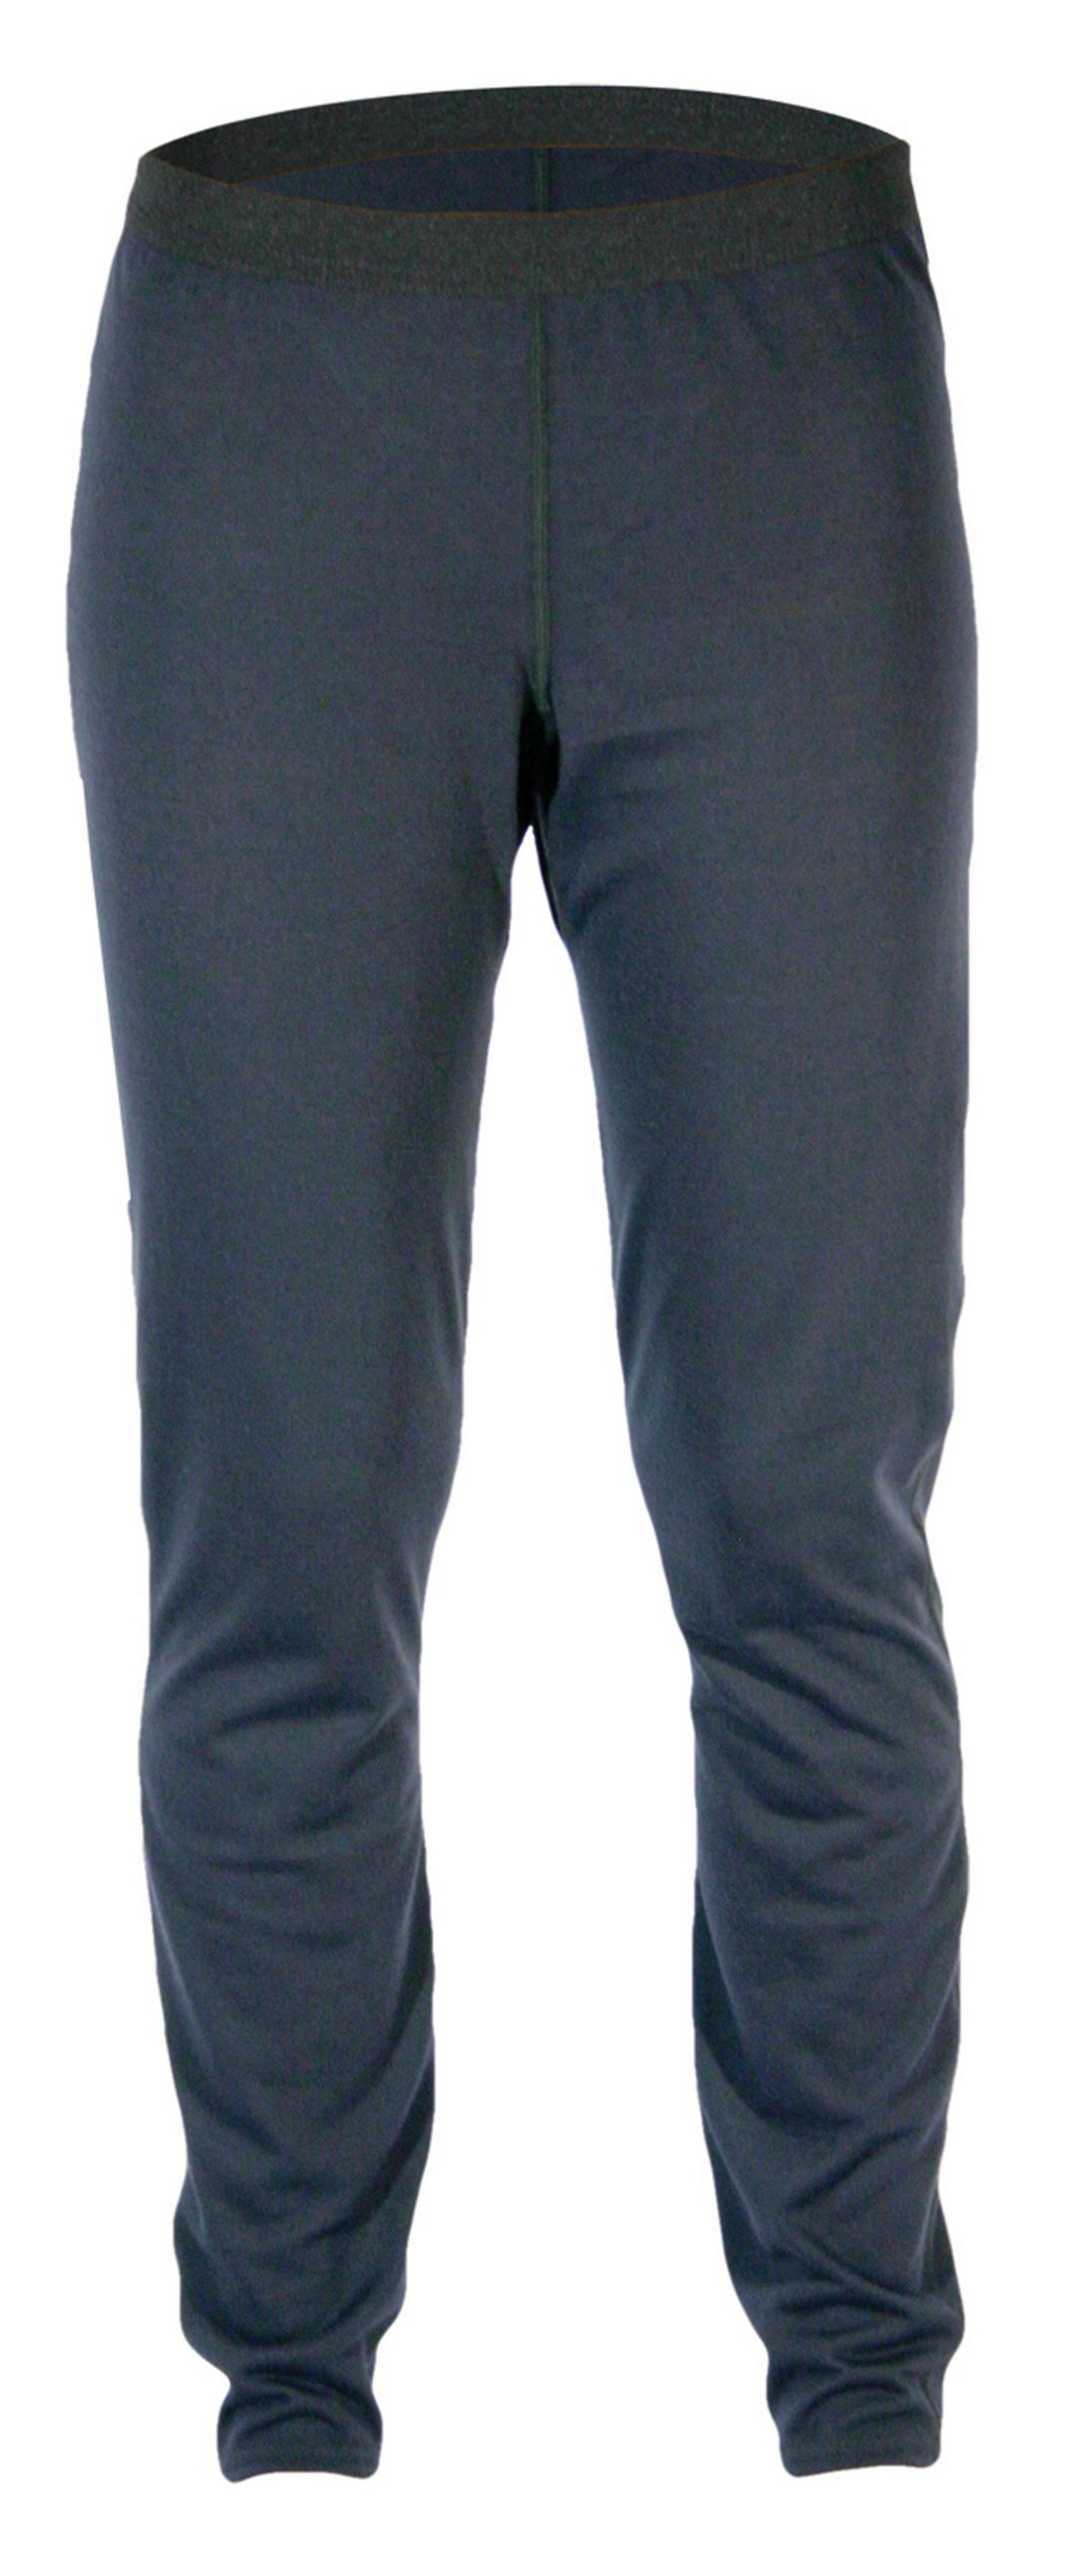 4277fe99f11e3 Hot Chillys Women's Pepper Skins Base Layer Pants | DICK'S Sporting ...